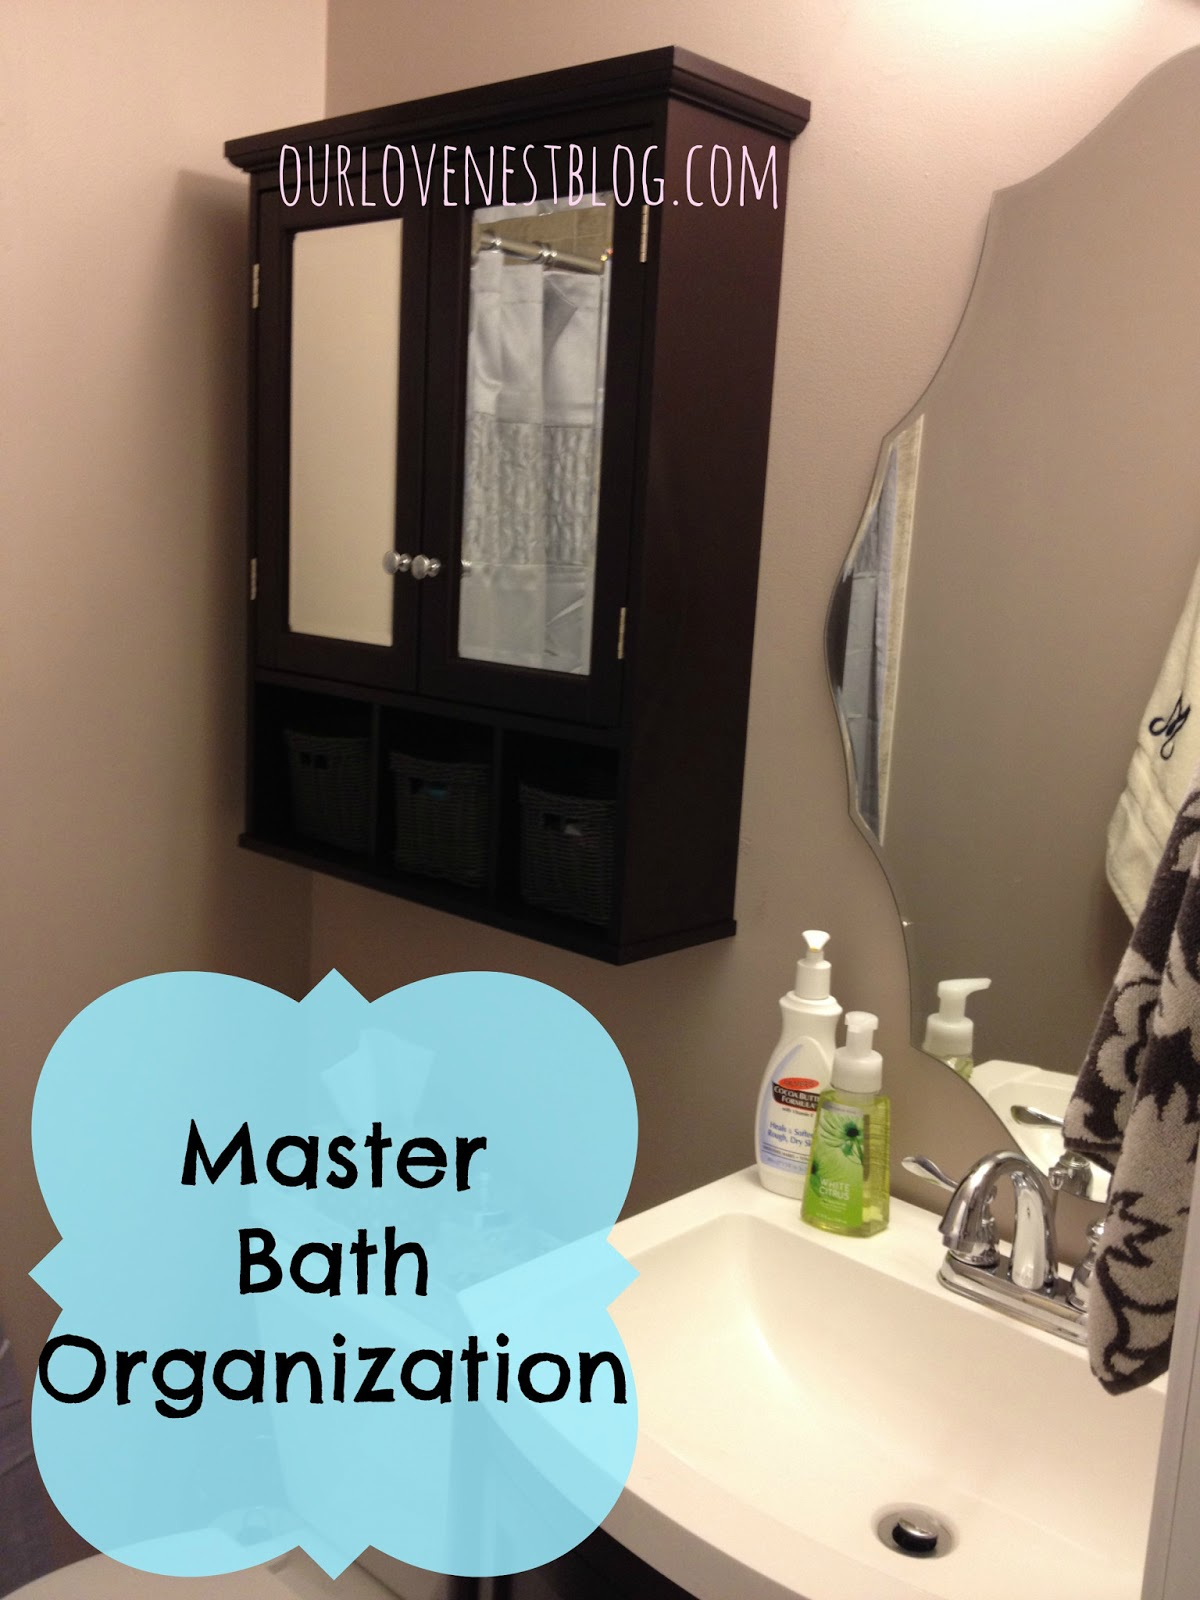 Our Love Nest: Organize Your Space :: A Linkup with Double the Fun ...